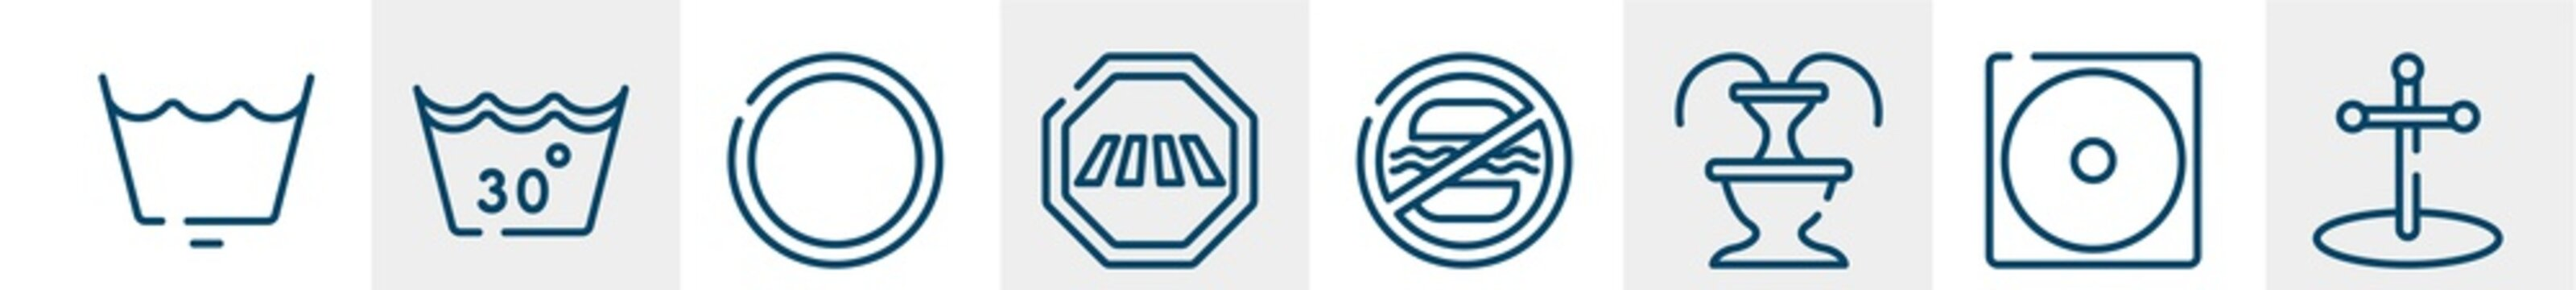 poi public places line icons such as wash cycle permanent press, 30 degree laundry, empty circle, crossing road caution, food not allowed, cross stuck in ground outline vector sign. symbol, logo